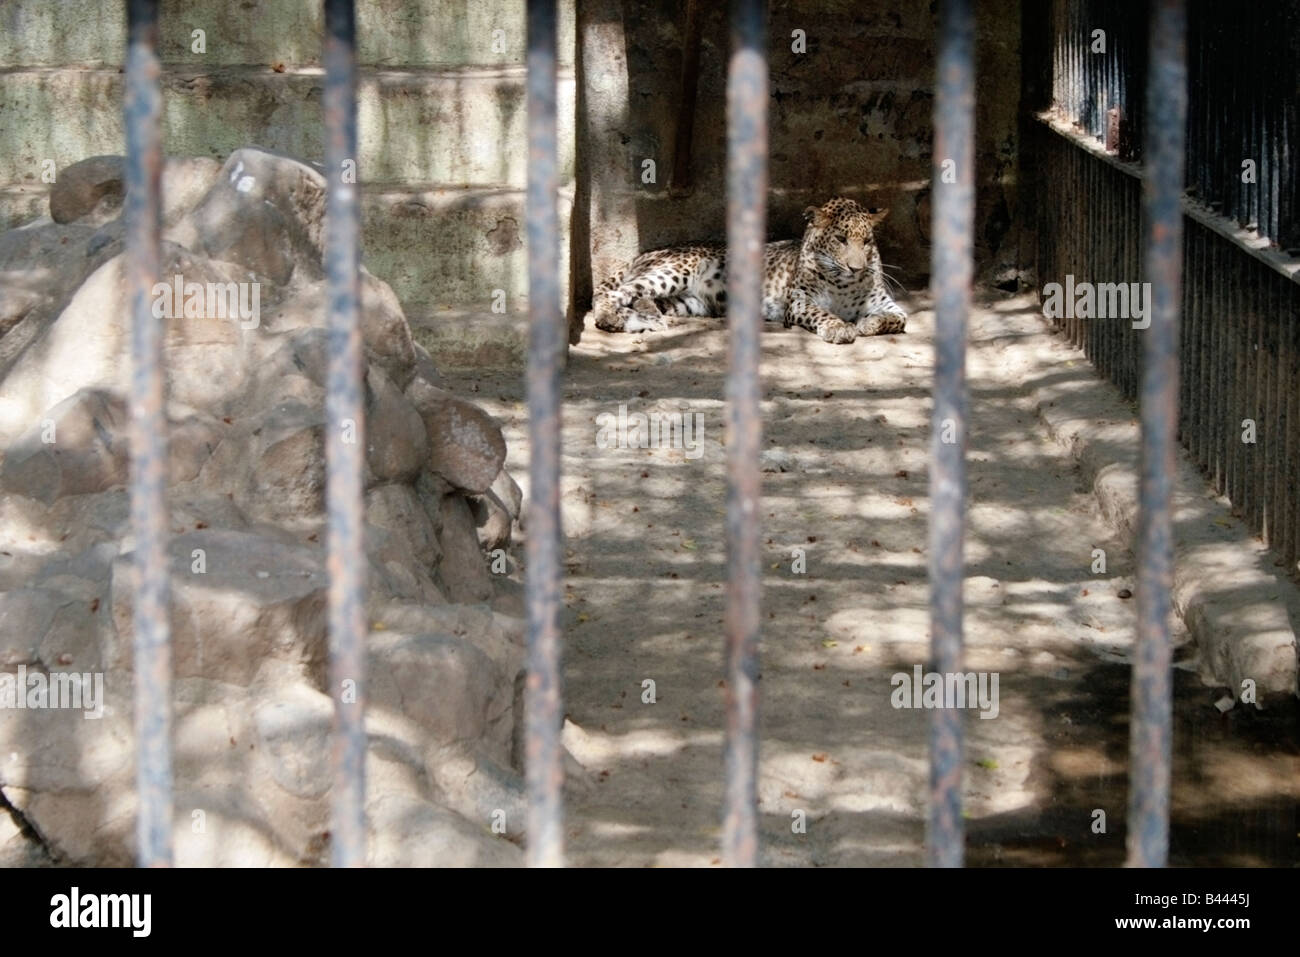 A leopard sits alone in a concrete enclosure in a zoo - Stock Image